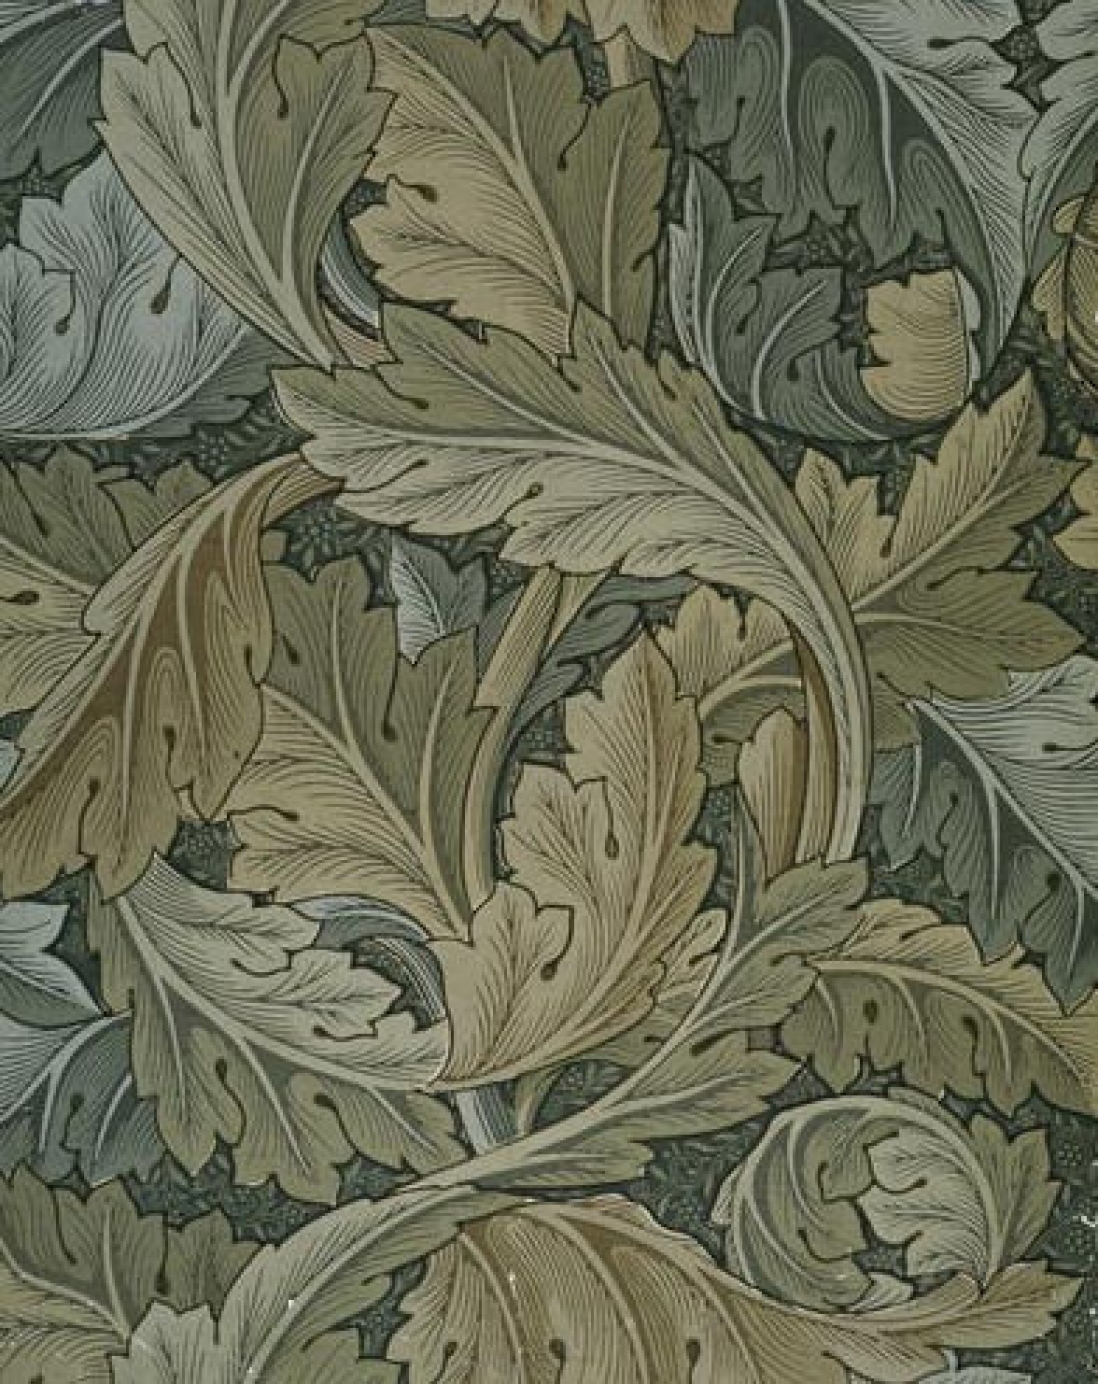 varying colours of green acanthus leaves overlapping to create a wallpaper.